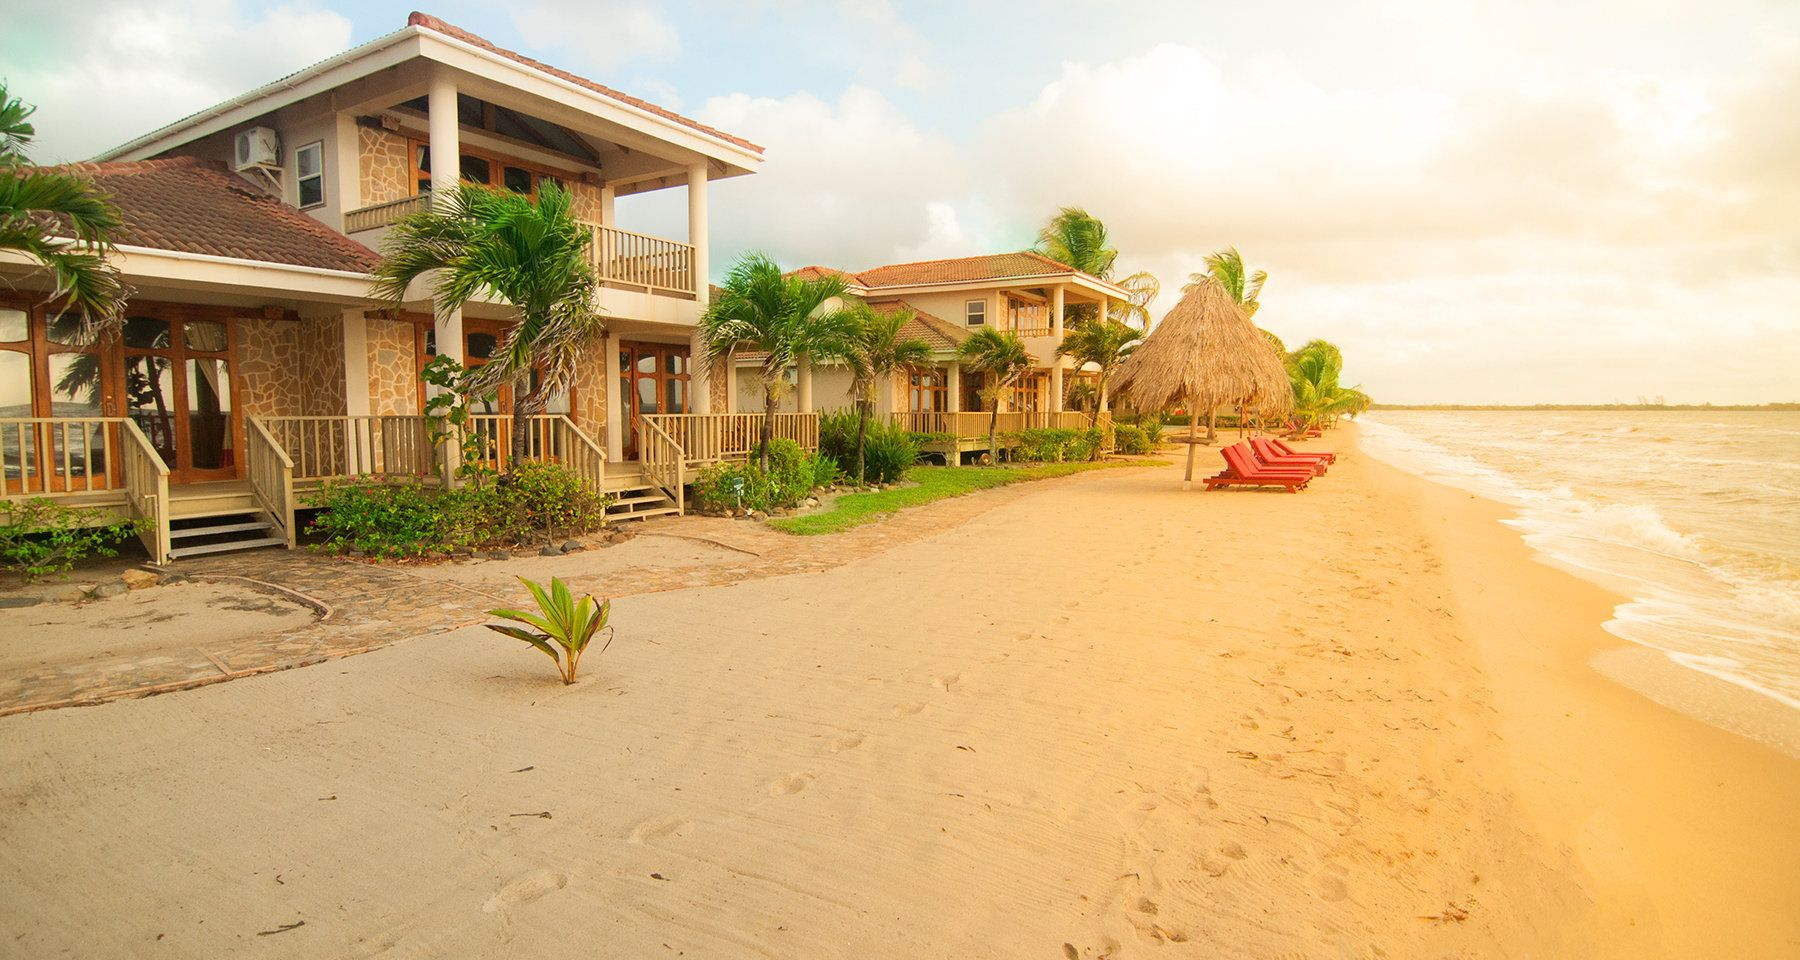 Hopkins Bay Resort Is A Beach And Hotel Located In Southern Belize Come See